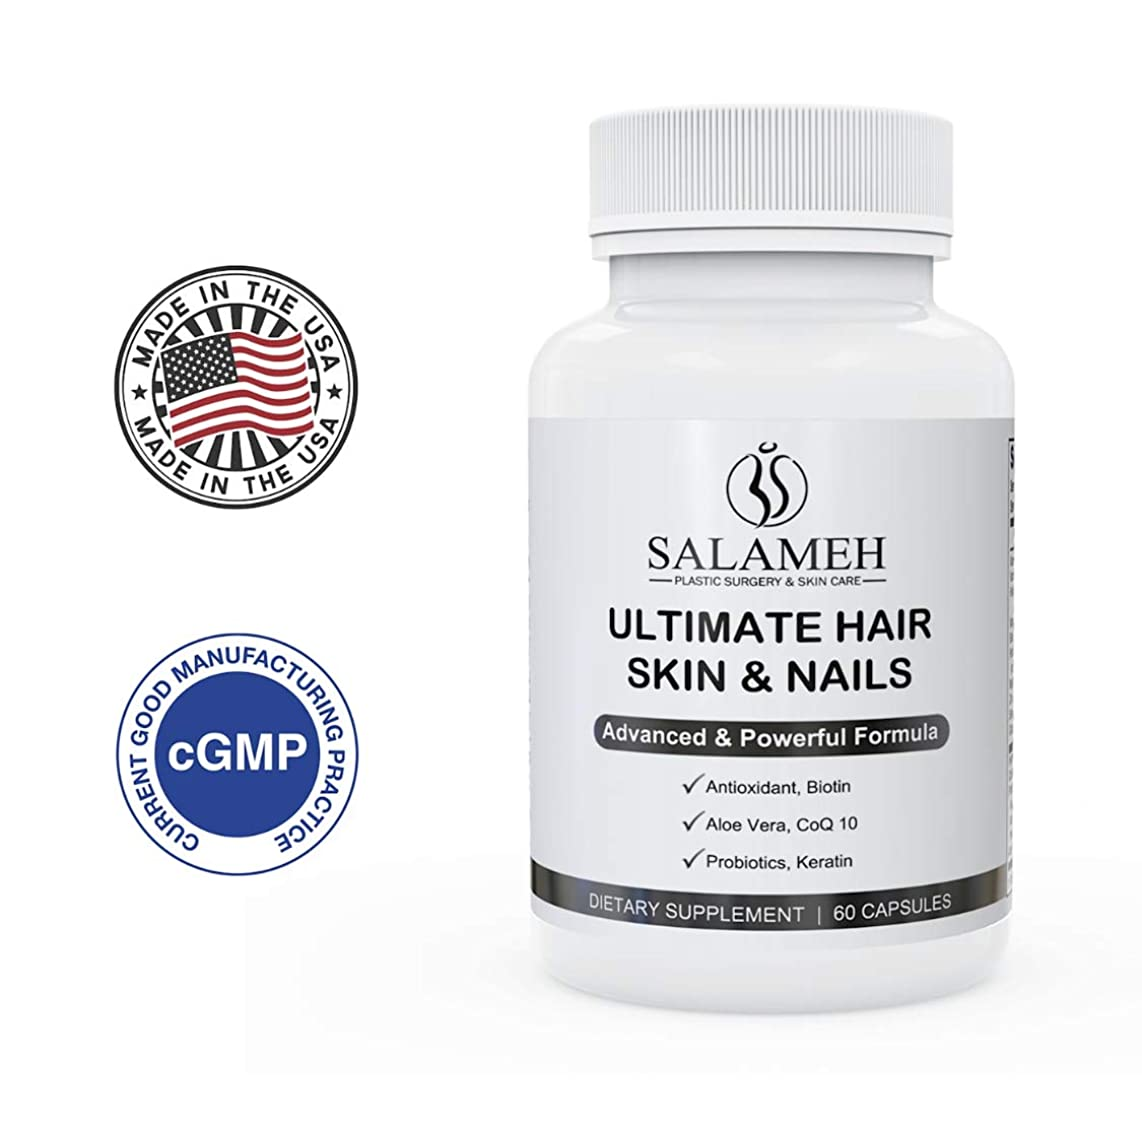 Salameh Ultimate Hair Skin and Nails Vitamins, Advanced Formula Dietary Supplement with Hydrolyzed Keratin, Biotin, CoQ10 and Probiotic Blend (60 Capsules)